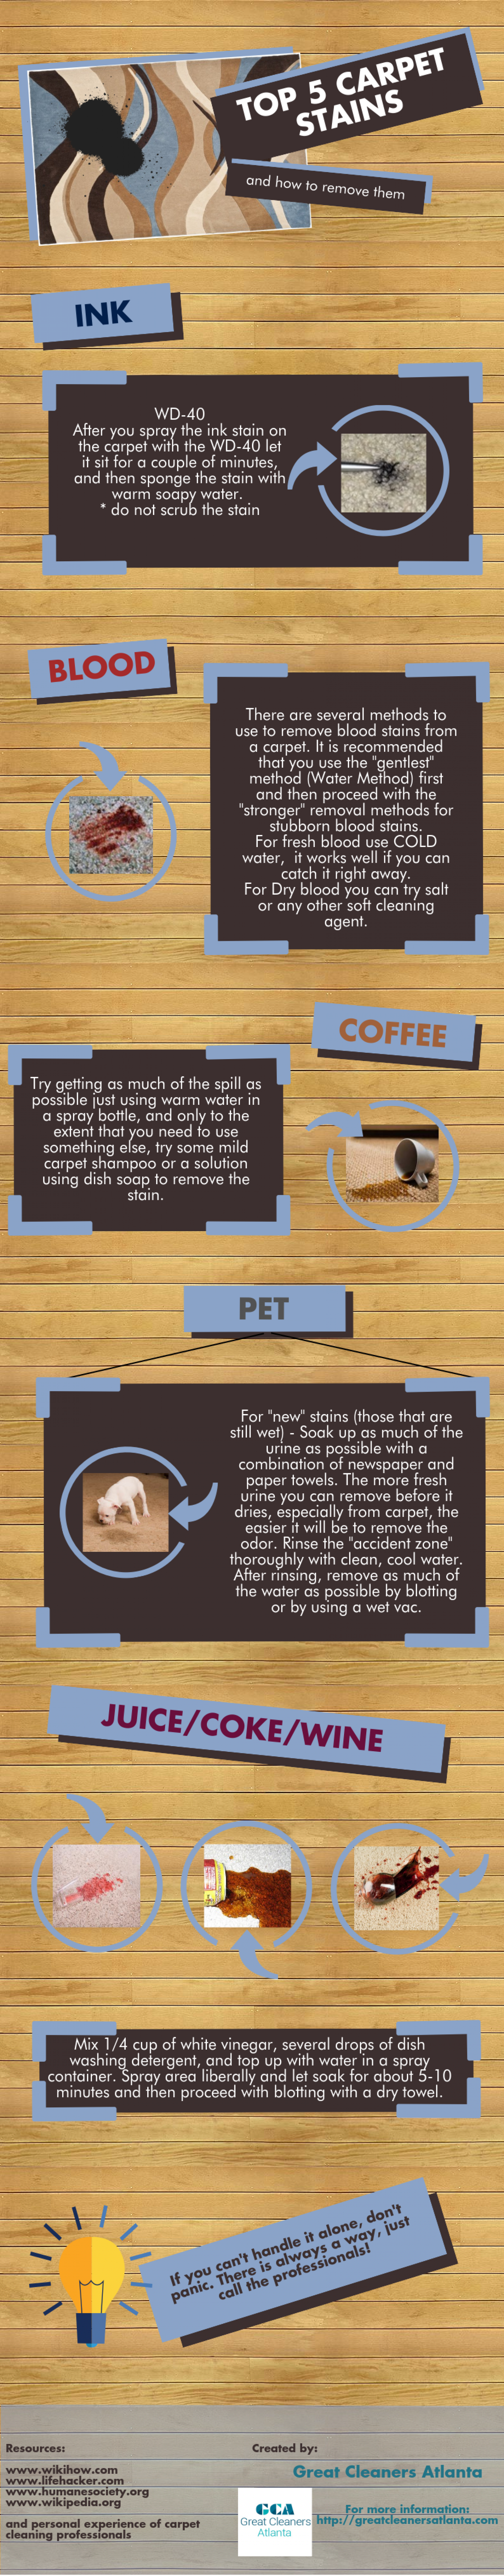 TOP 5 Carpet Stains Infographic